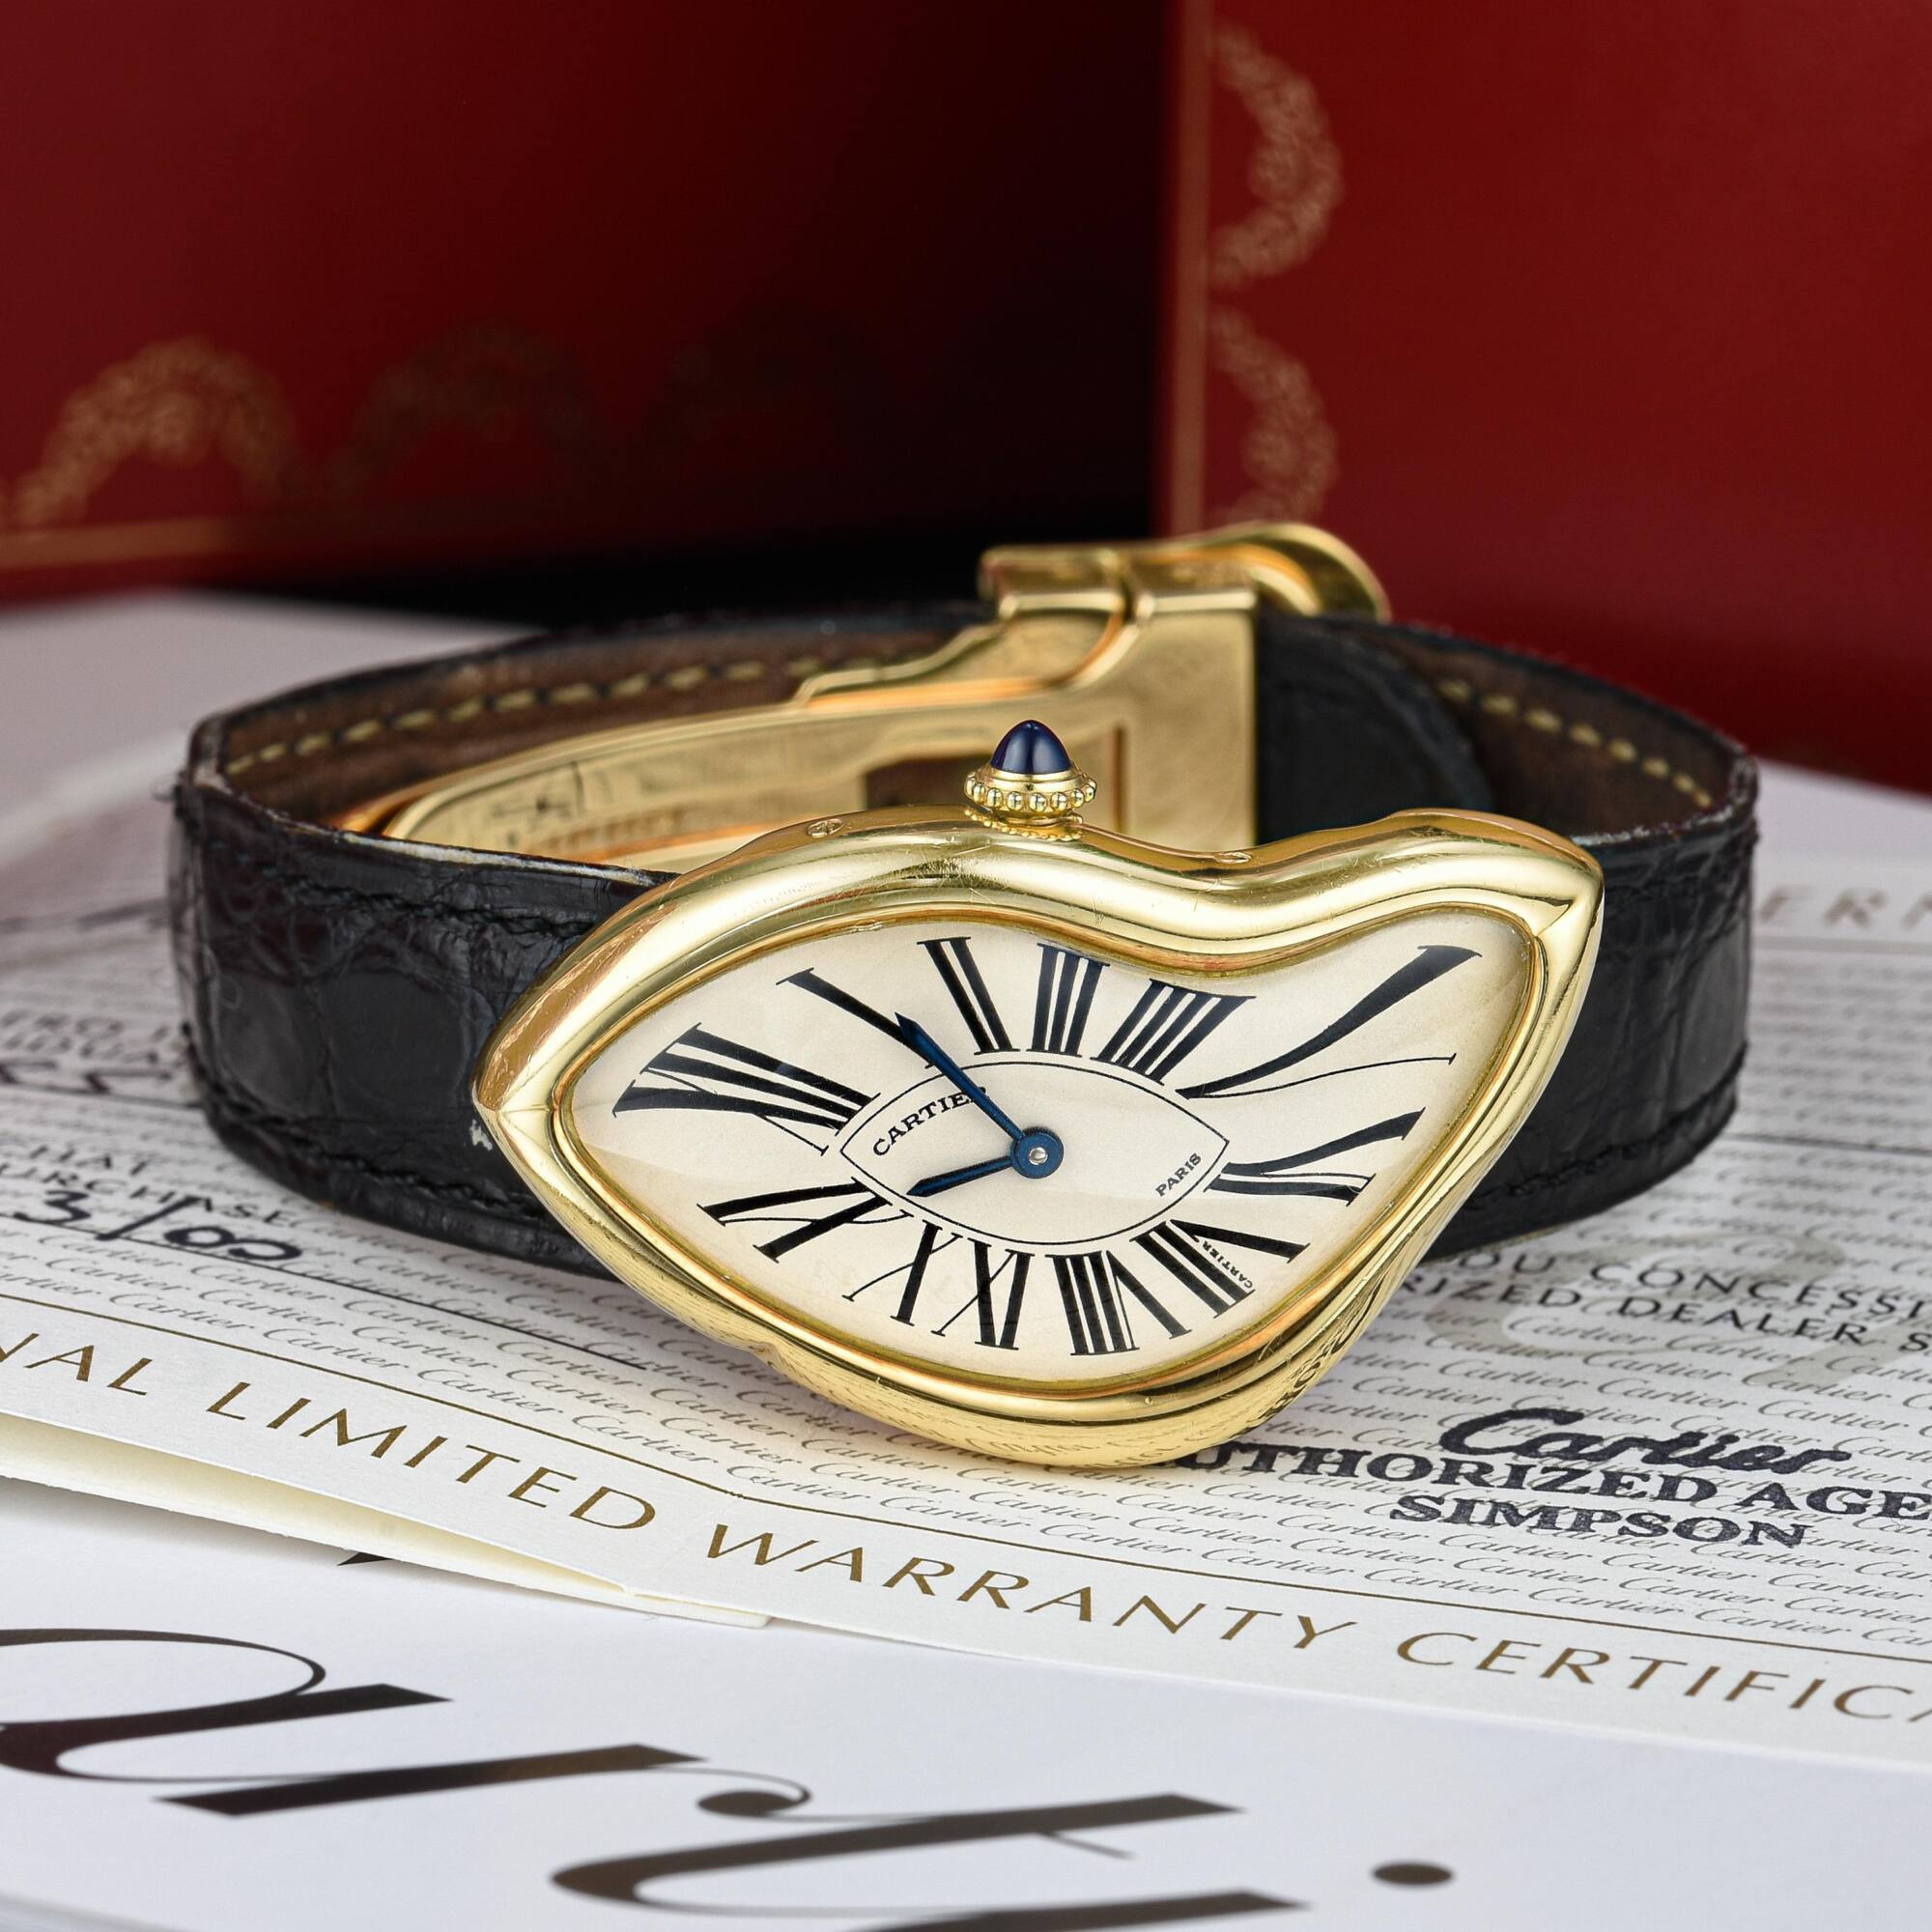 """Fortuna's December """"Important Watches"""" Auction sets record with rare 1991 Cartier Crash - MondaniWeb"""